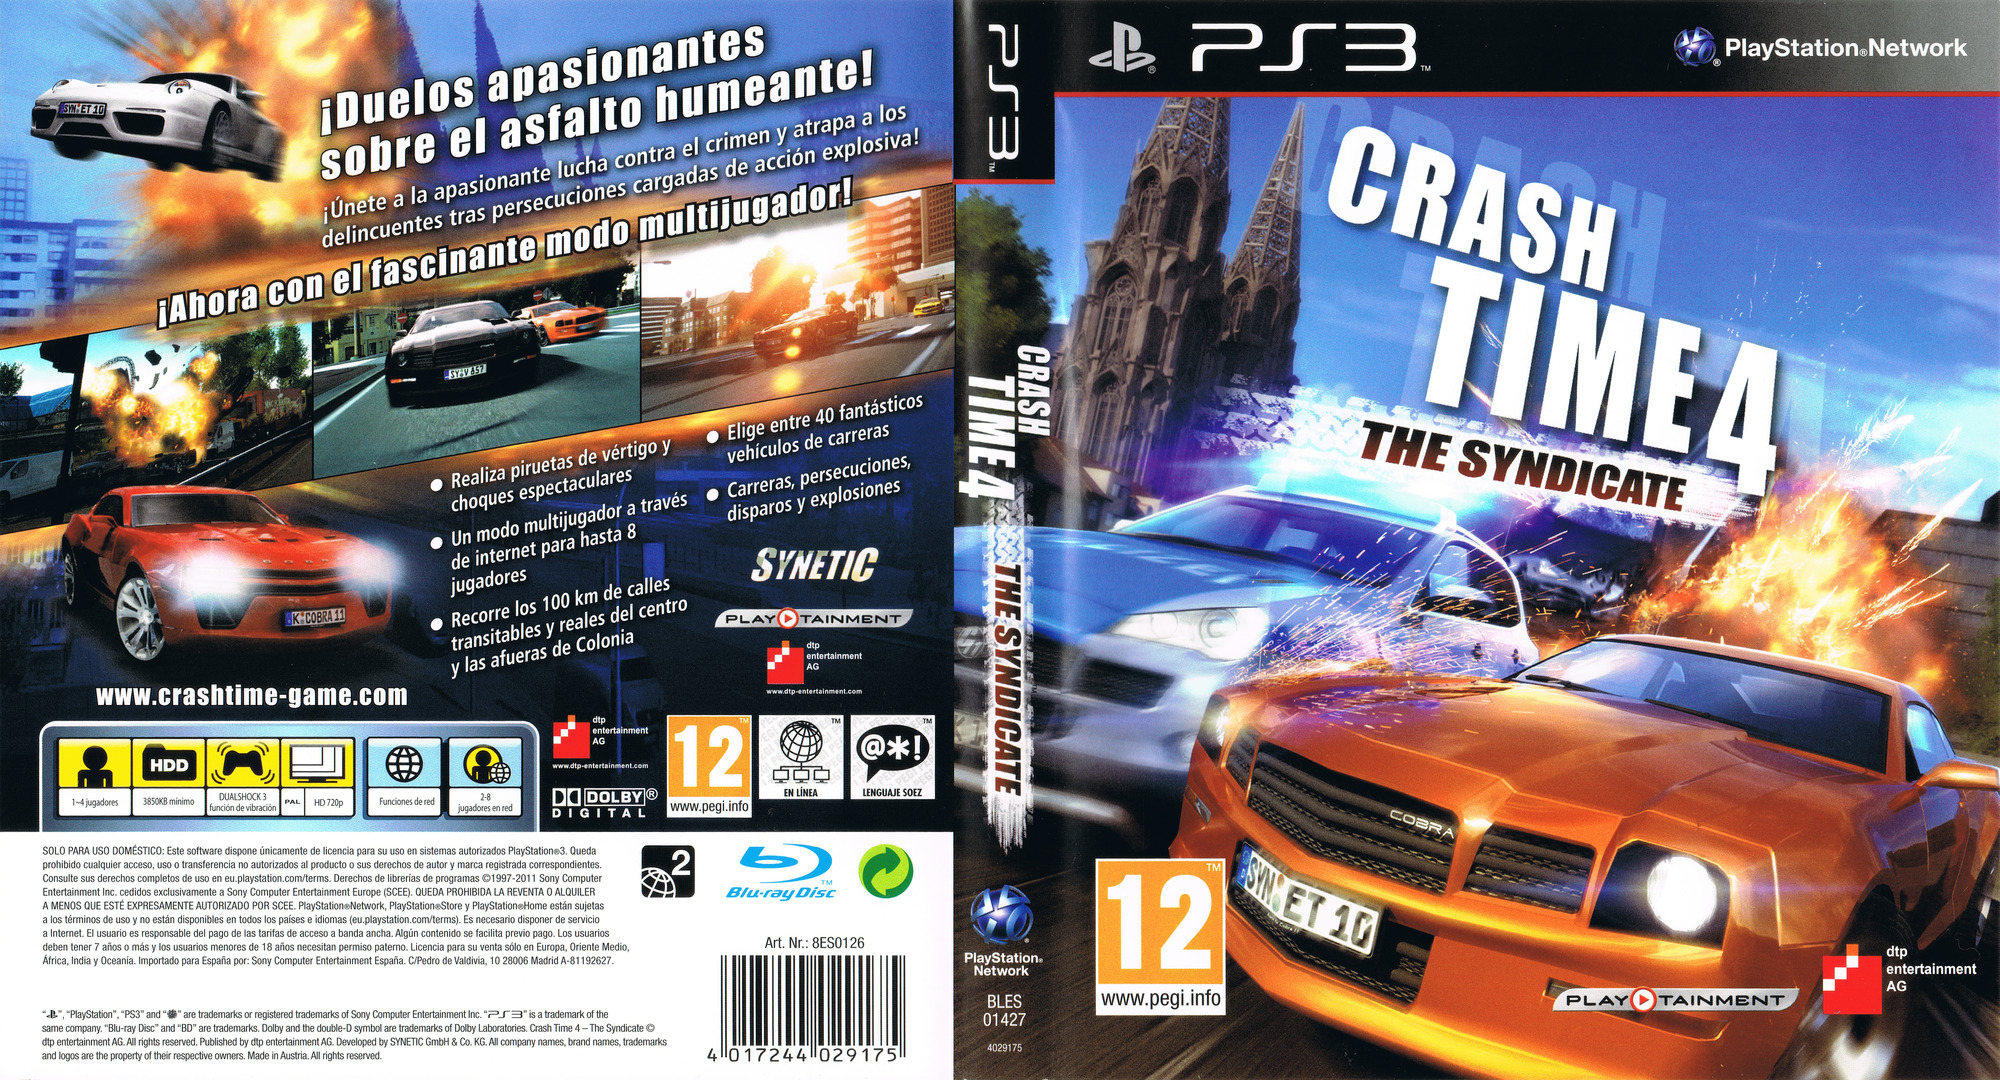 About: Crash Time 4: The Syndicate